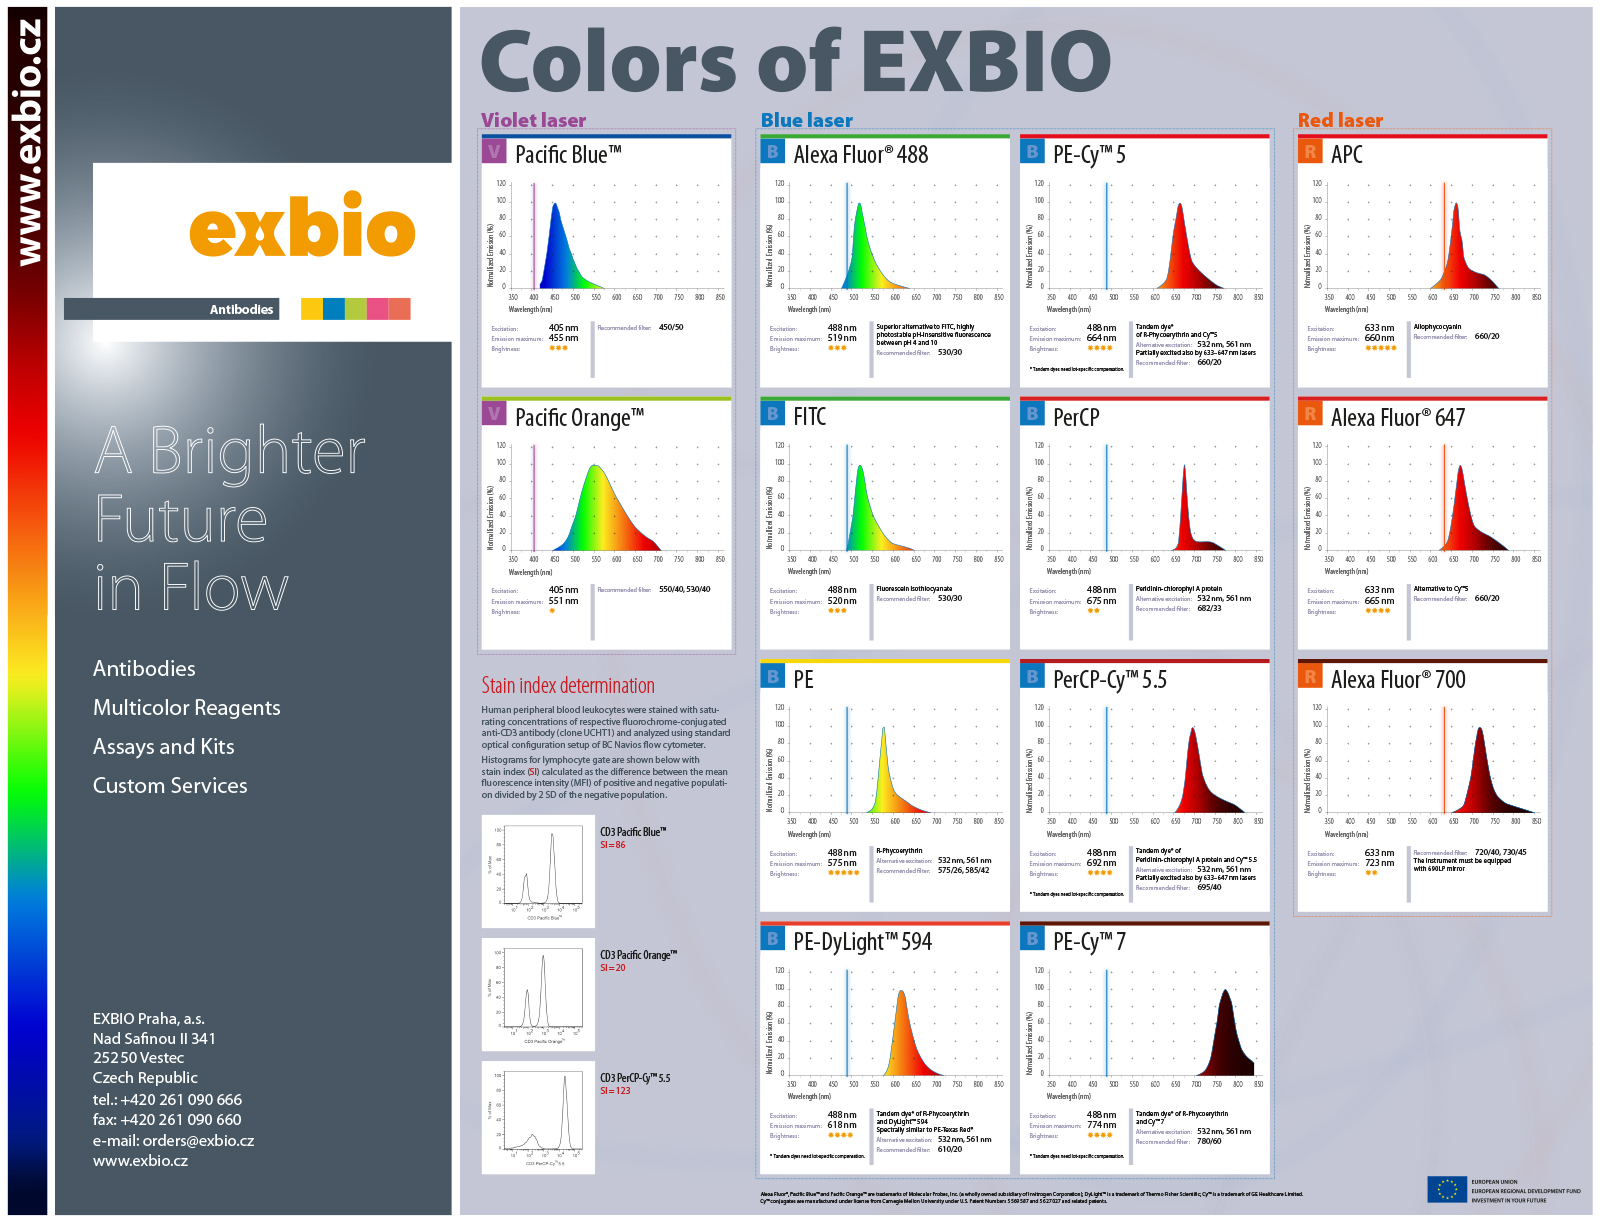 https://www.exbio.cz/getattachment/about-exbio/Technical-resources/Energistically-customize-scalable-opportunitie/EXBIO-Posters-1/EXBIO-poster_Colours_190327_newLogo.jpg.aspx?lang=en-US